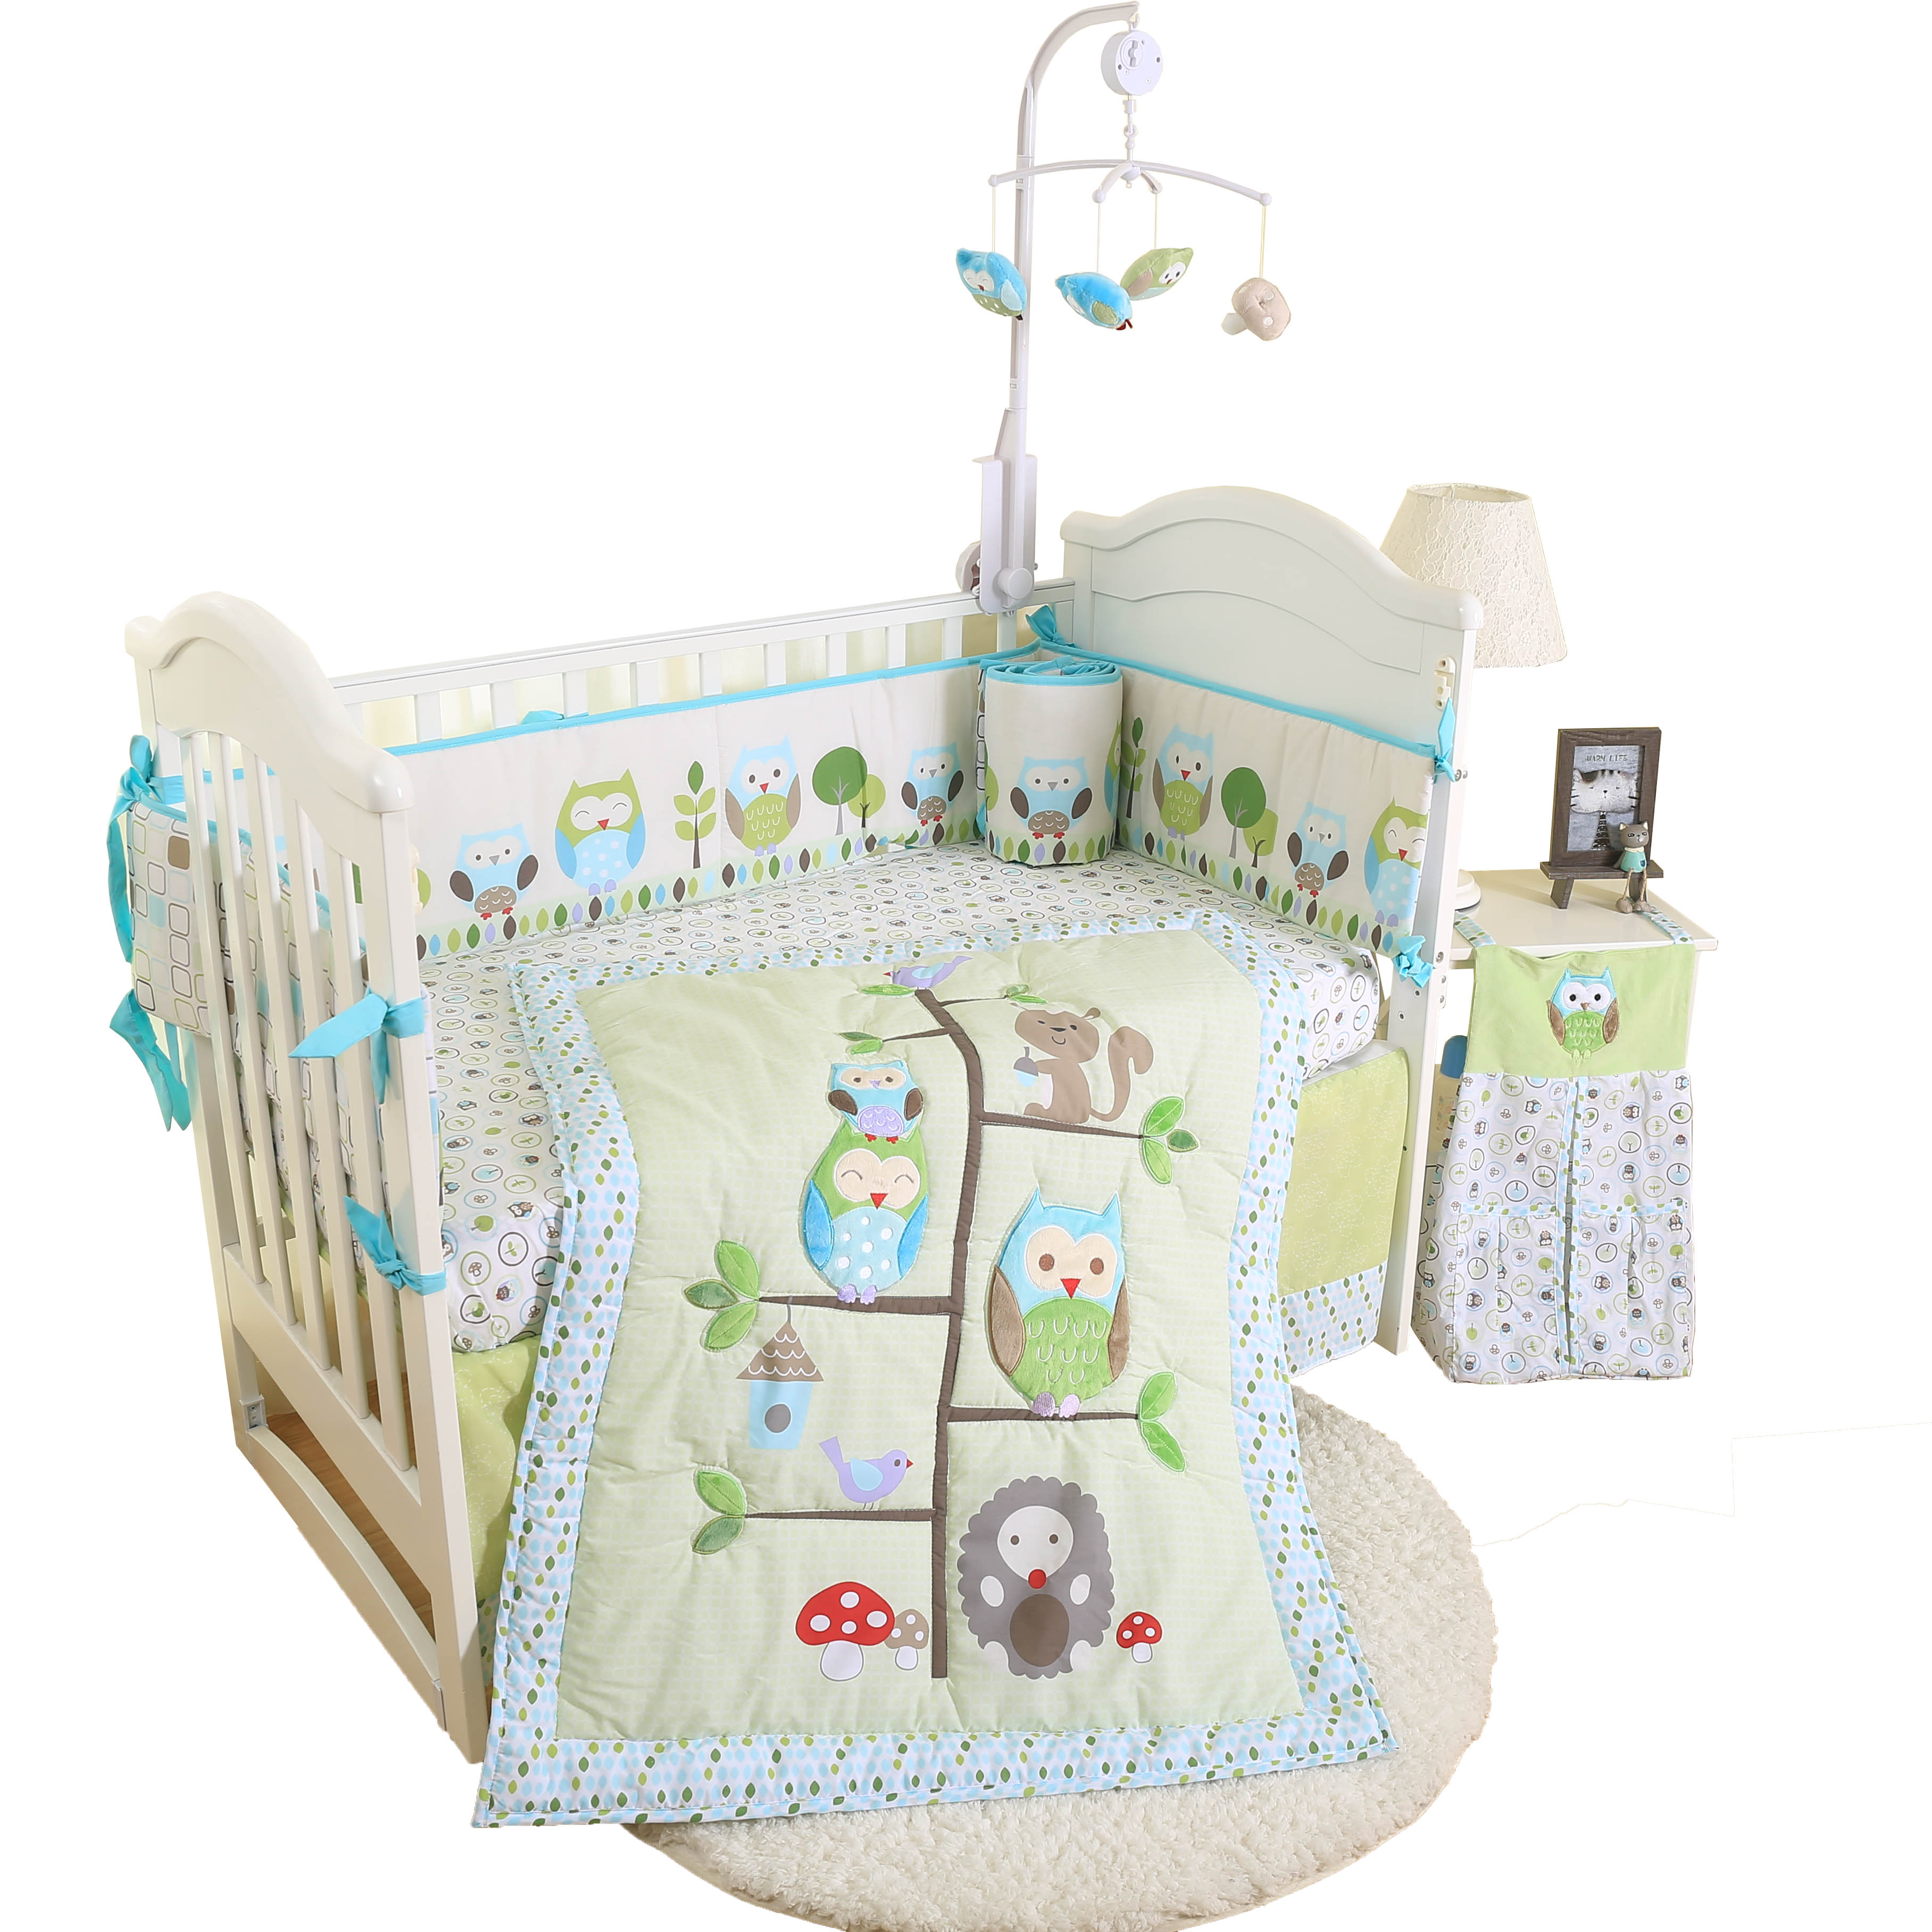 Eco-friendly easy cleaning cute new manufactured competitive price 4 piece baby bedding setEco-friendly easy cleaning cute new manufactured competitive price 4 piece baby bedding set